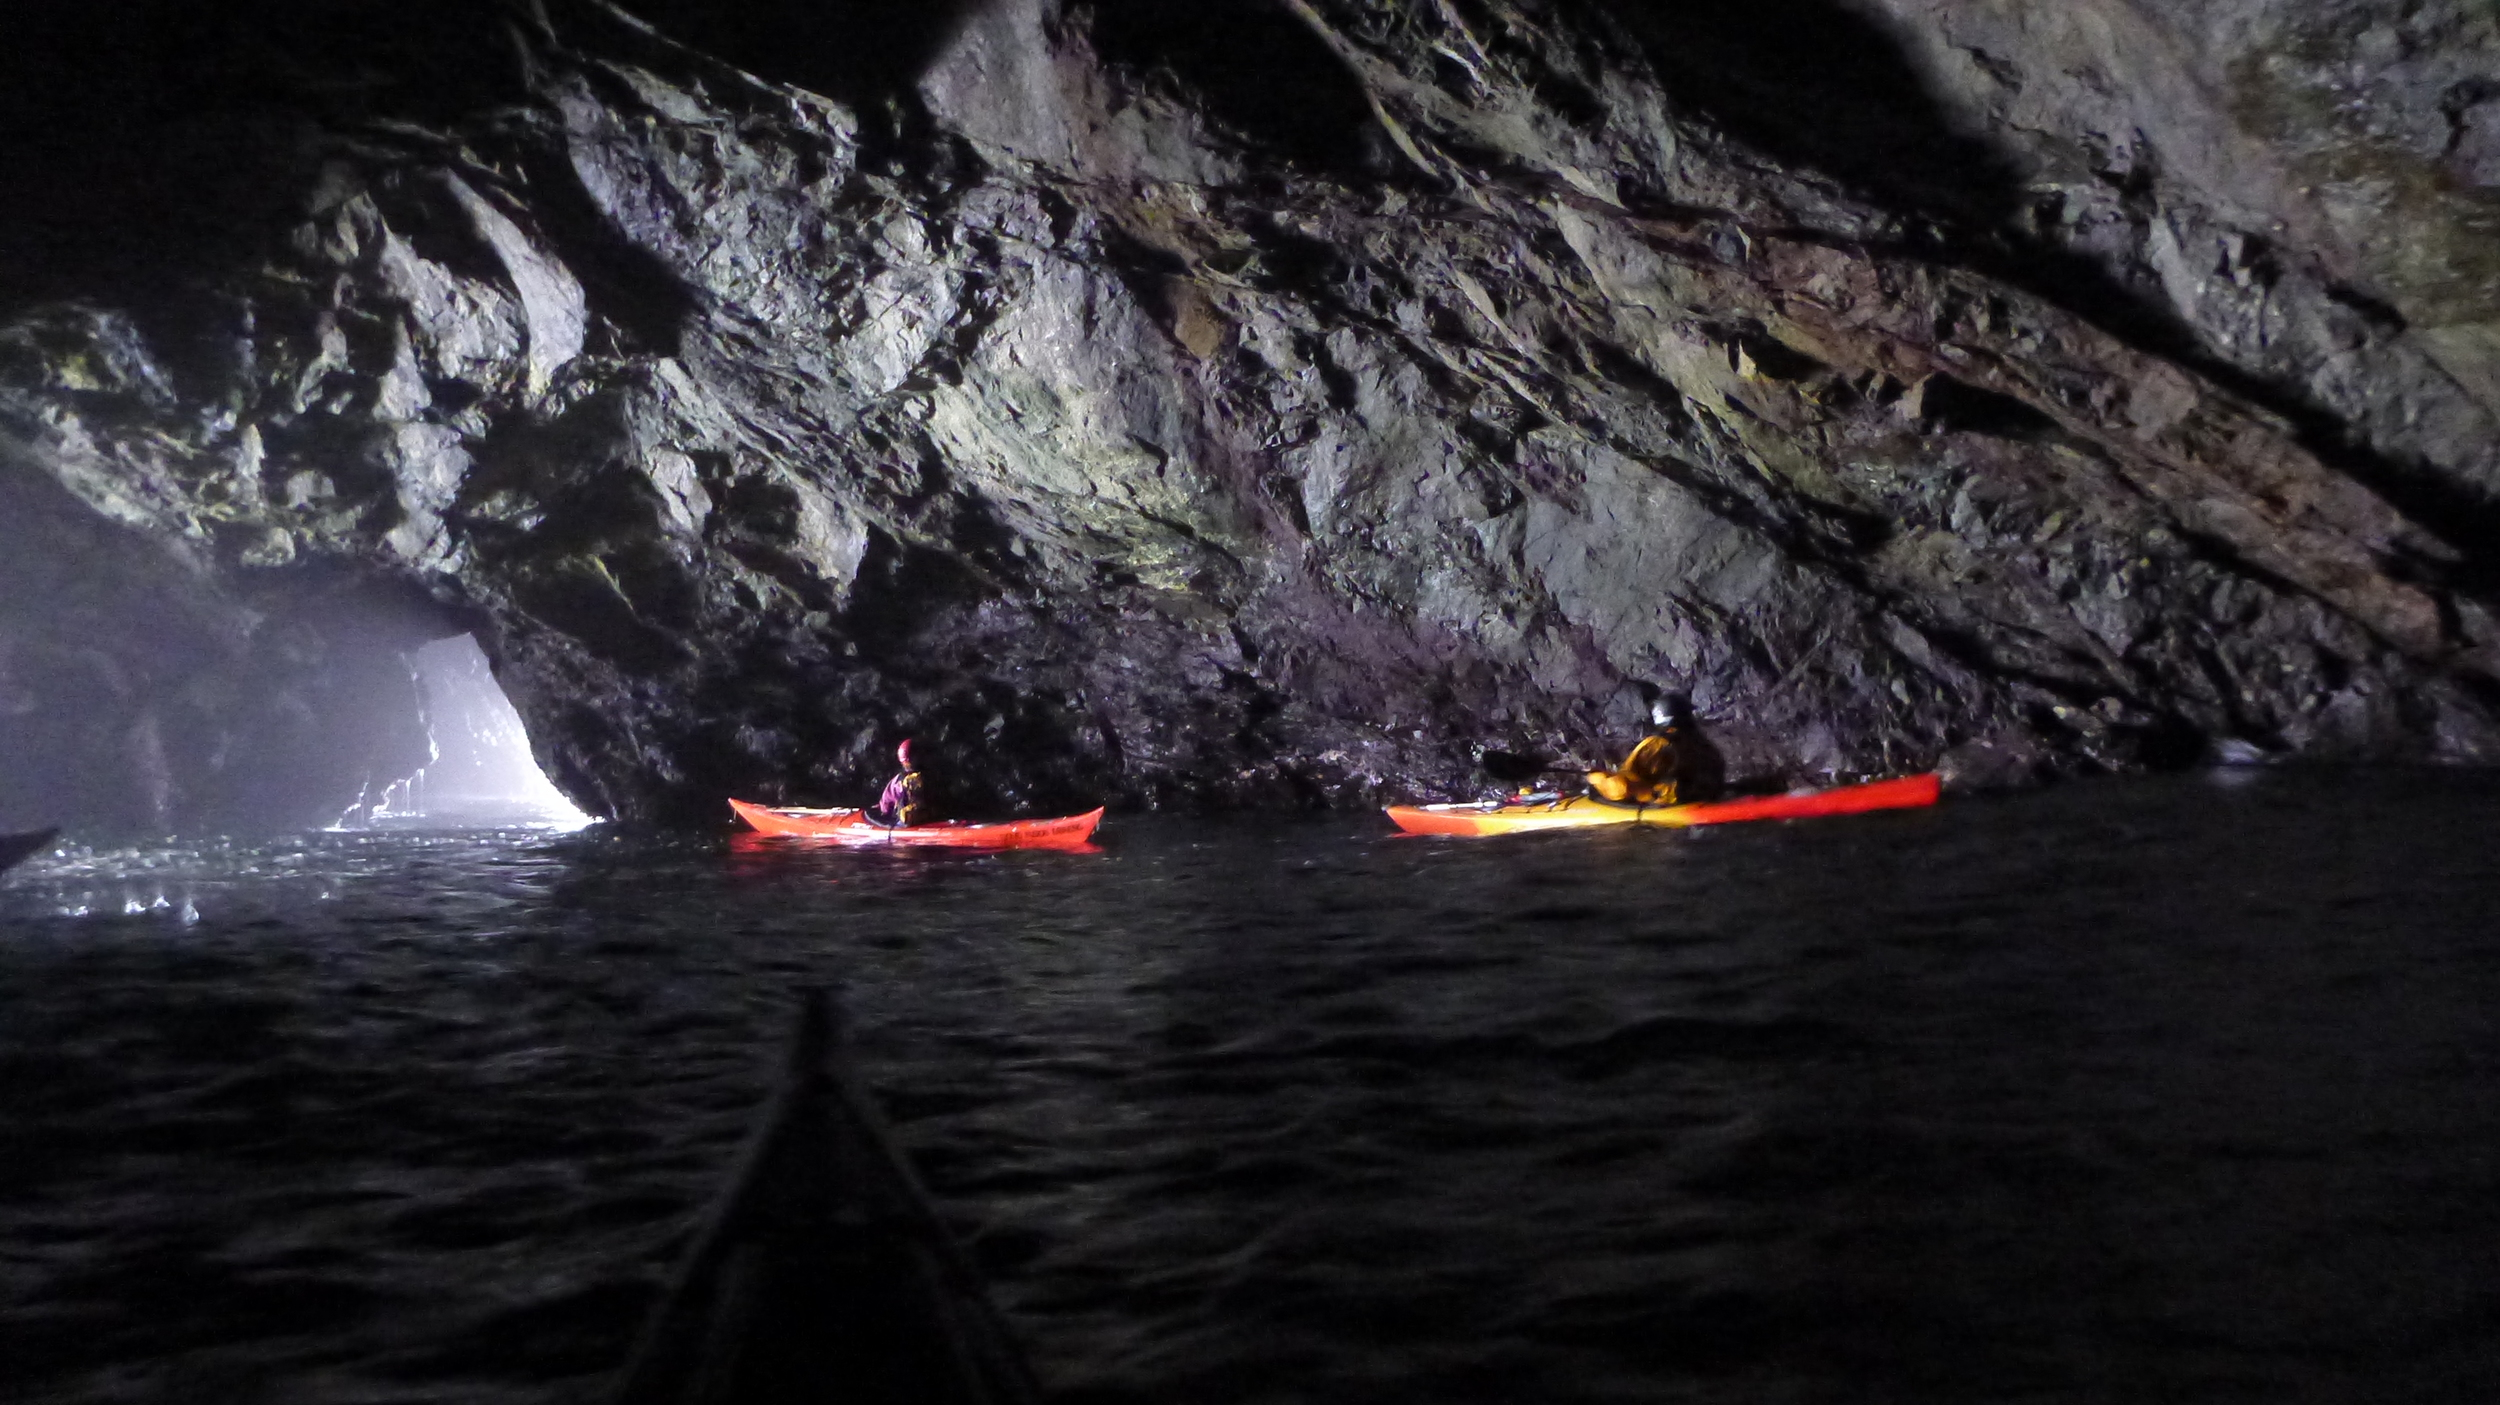 Sea kayaking through Mendocino sea caves.